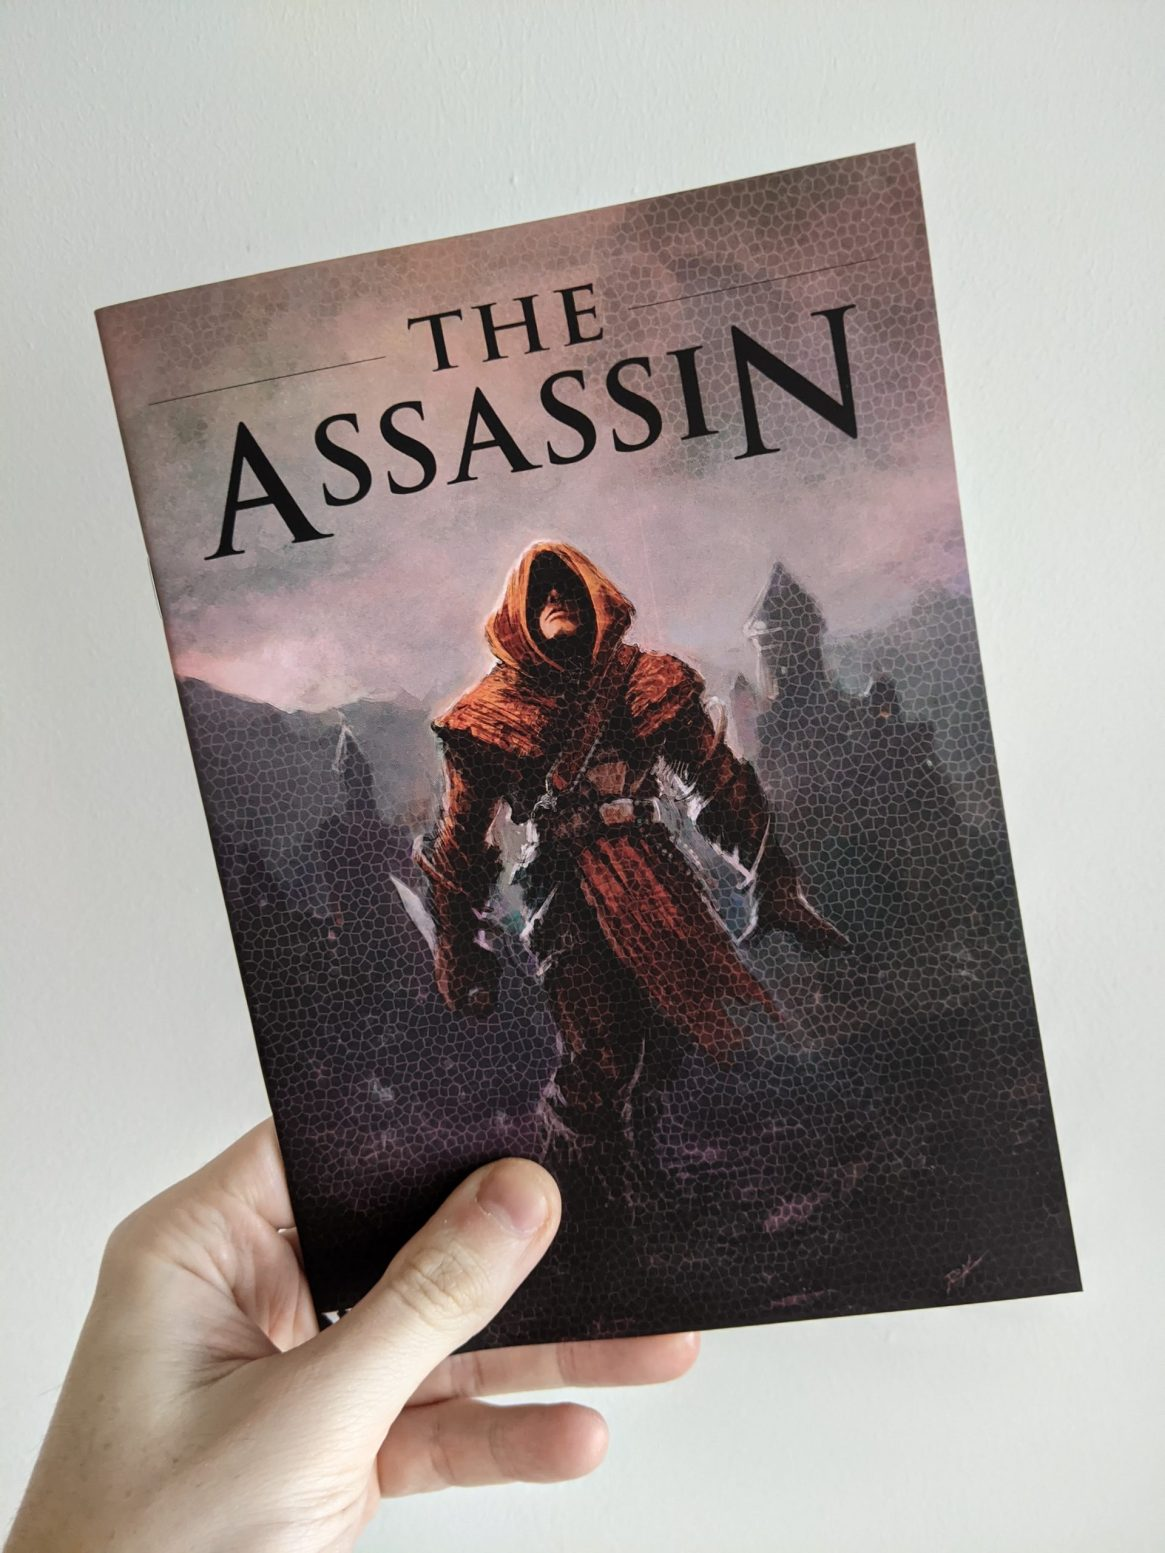 """A hand holding a print zine against a white wall.. The cover shows a hooded figure in red robes holding a large knife, walking away from a city skyline. The title reads """"The Assassin""""."""